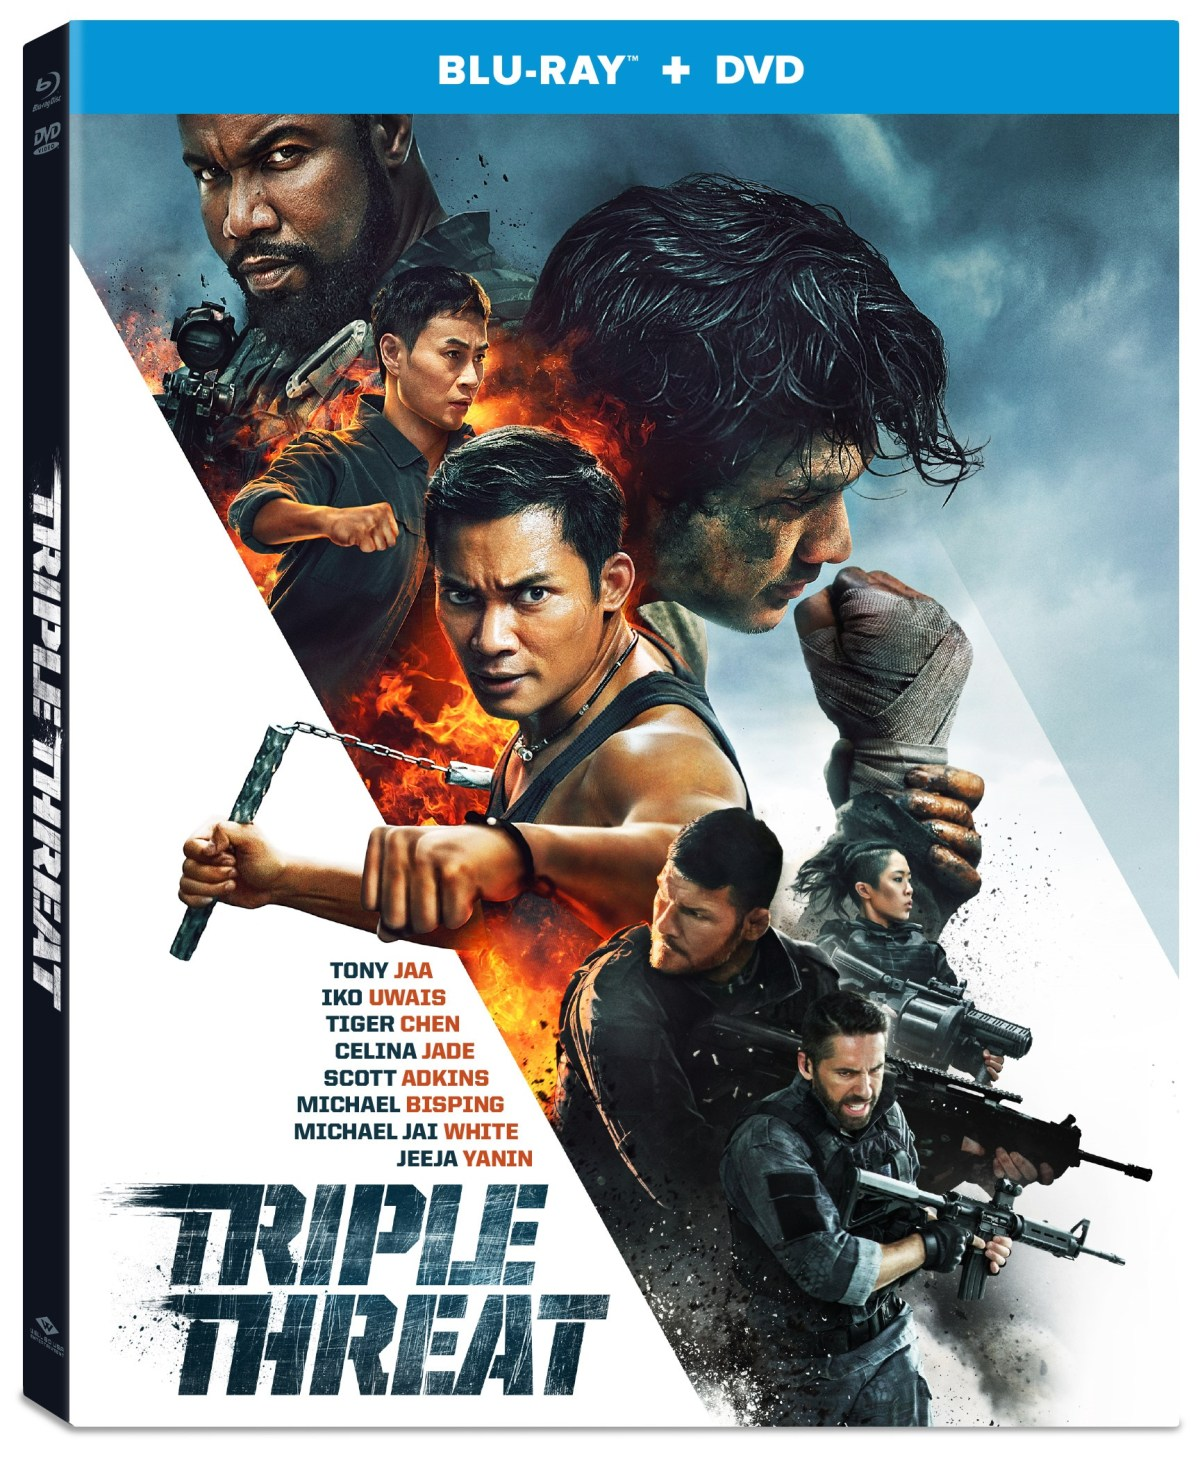 [GIVEAWAY] Win 'Triple Threat' On Blu-ray/DVD Combo Pack: Available On Blu-ray & DVD May 14, 2019 From Well Go USA 4